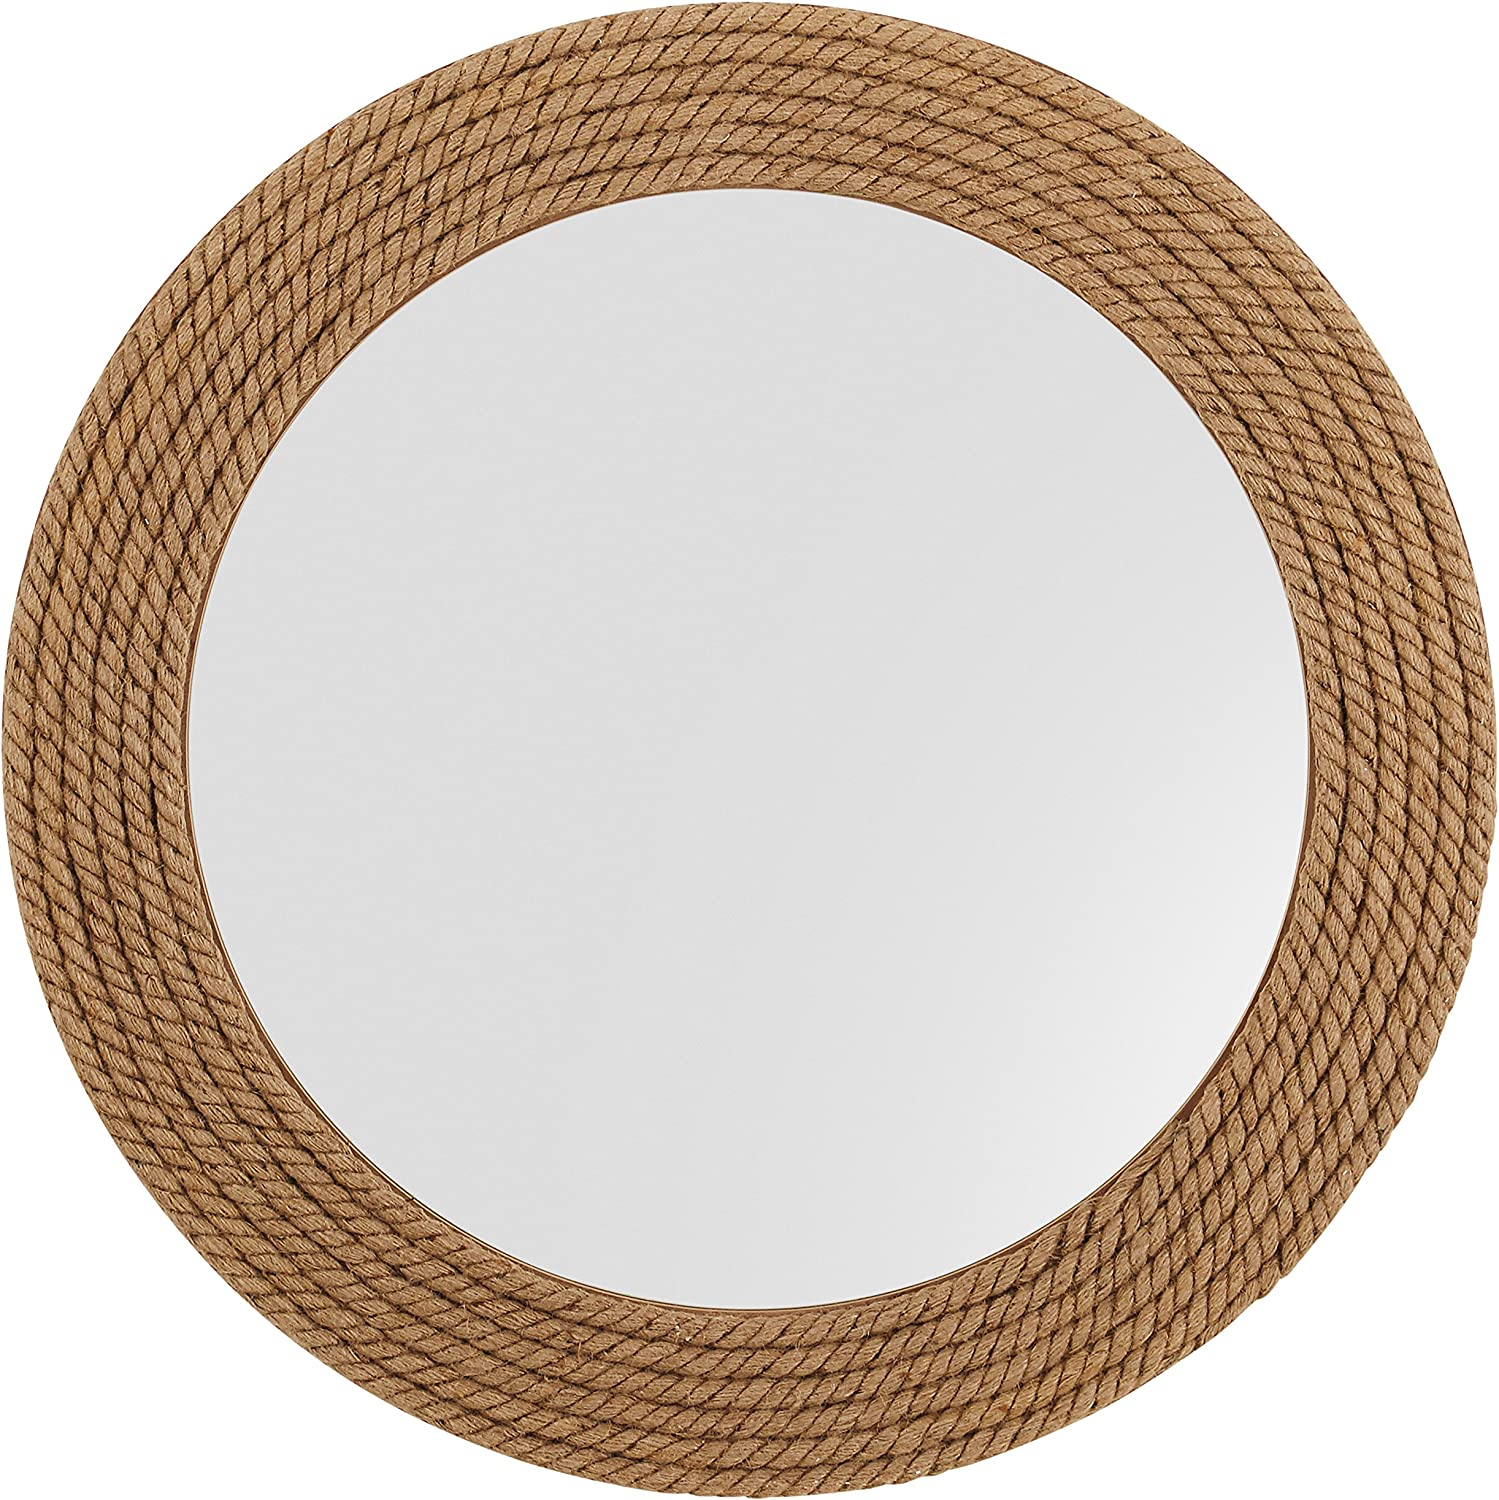 Stone & Beam Rustic Hemp Rope Mirror, 31.1  H, Brown